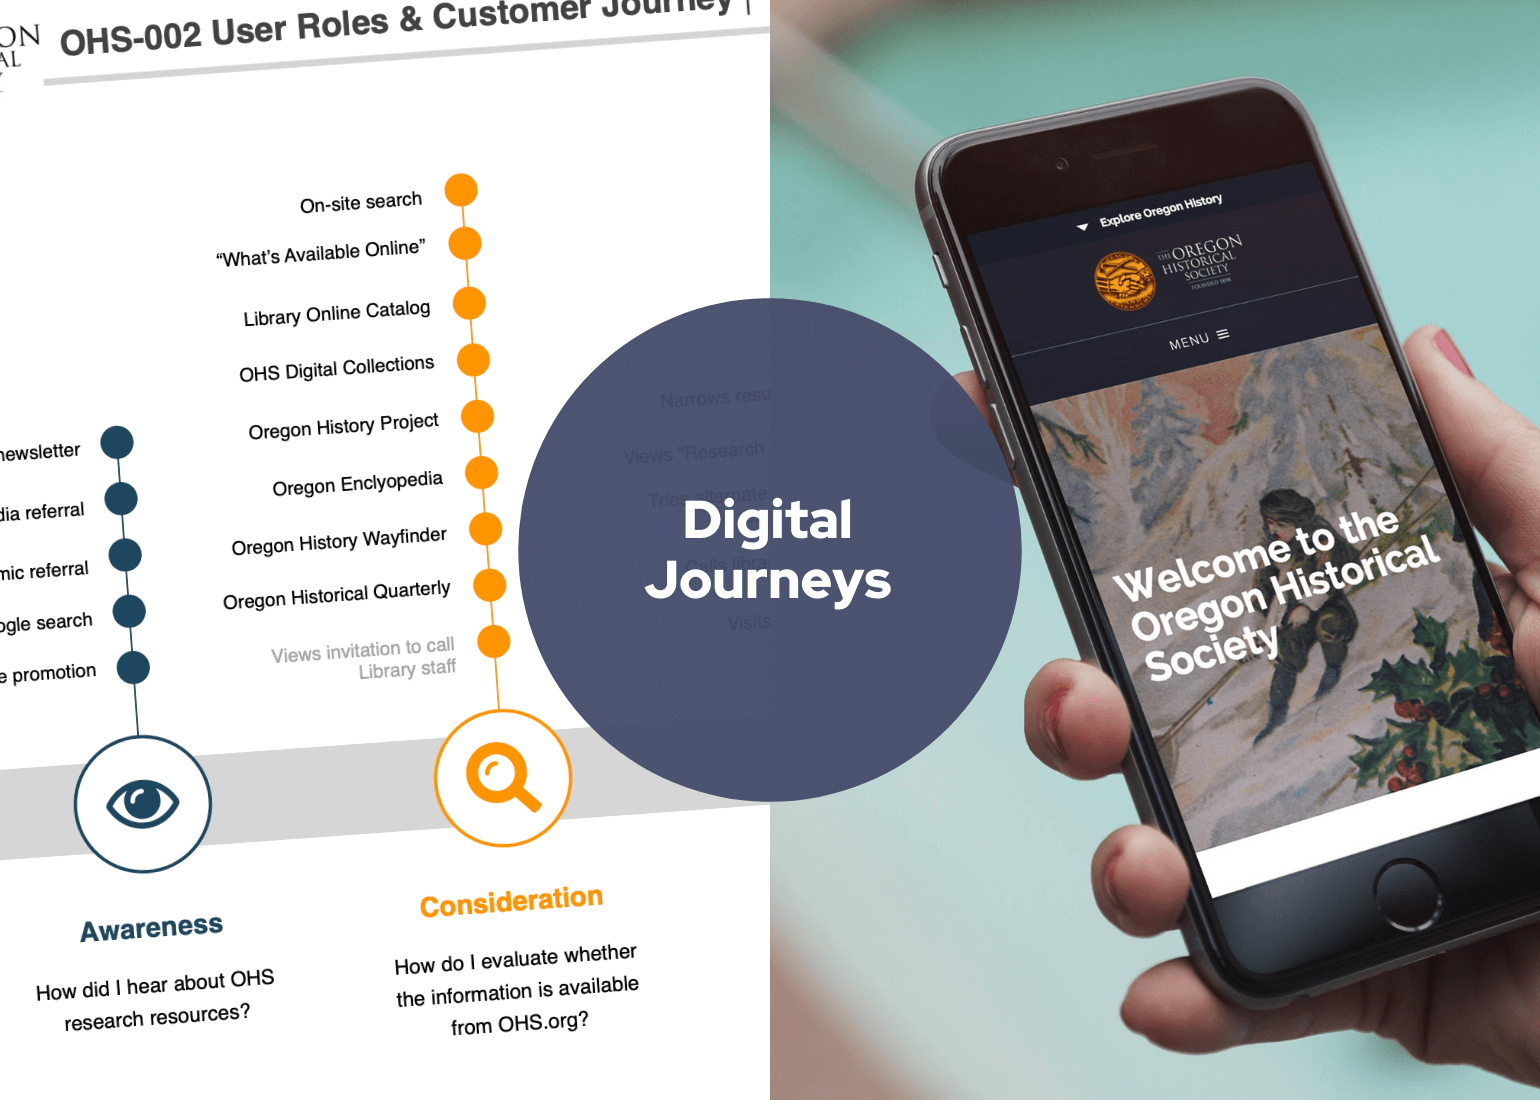 Digital Journeys. Customer journey map. iPhone with view of Oregon Historical Society website.